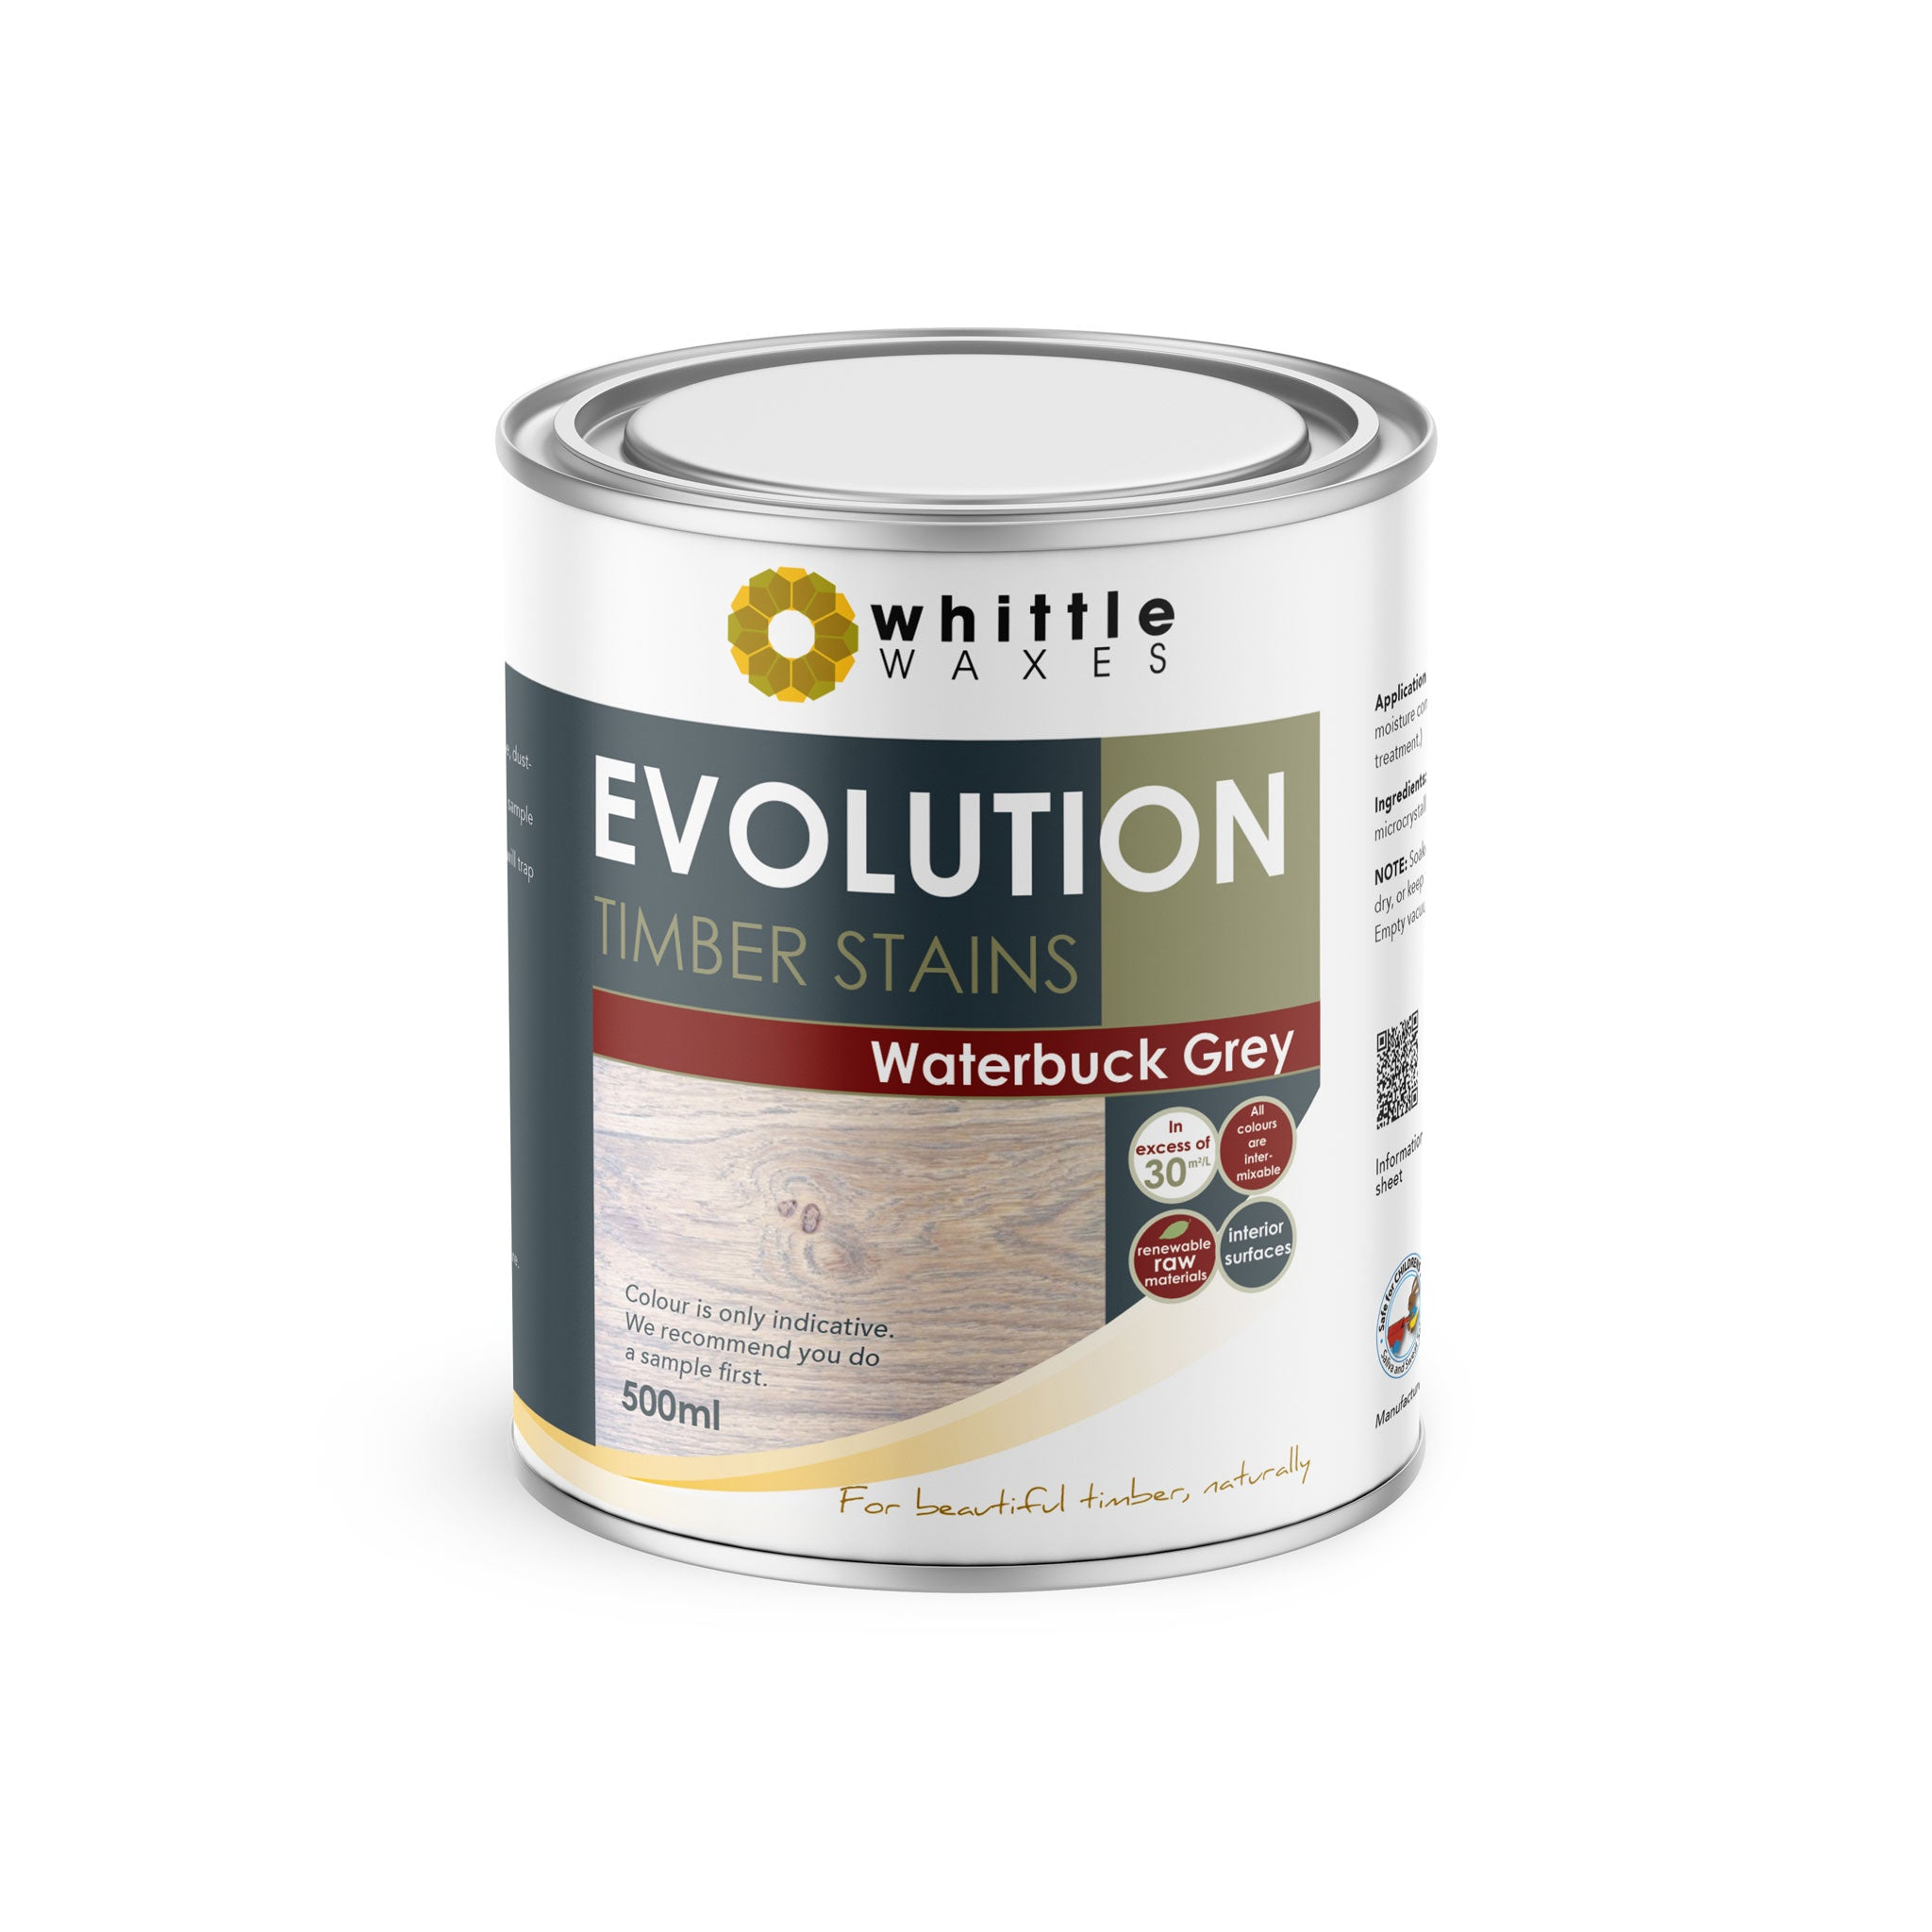 Whittle Waxes Evolution Colours (Waterbuck Grey) - quality timber stain - 500ml